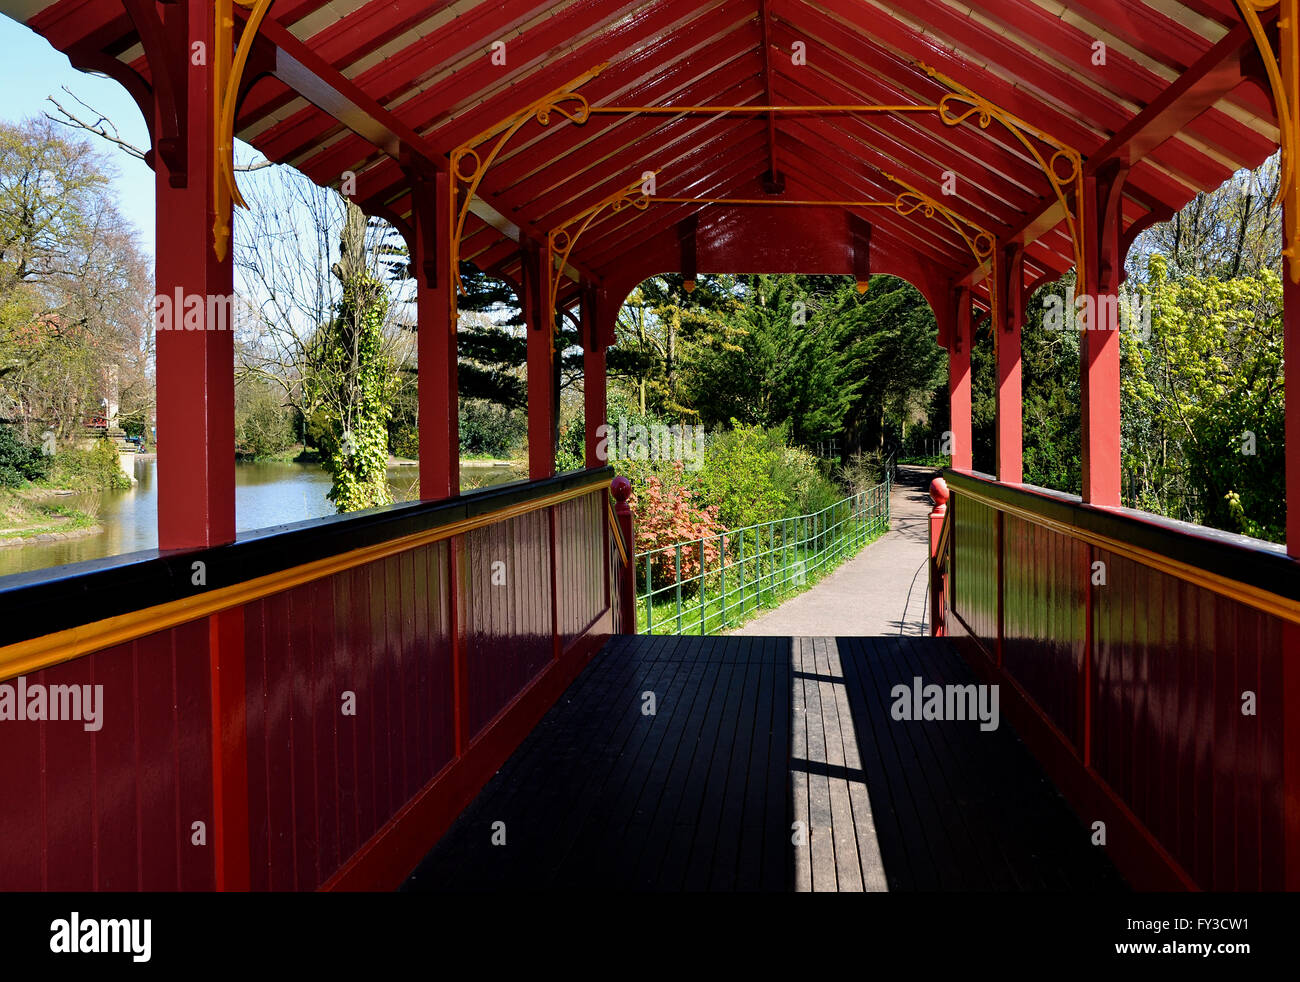 Interior of The Swiss Bridge in Birkenhead Park, Wirral, UK, a 23-foot pedestrian span of stringer construction - Stock Image